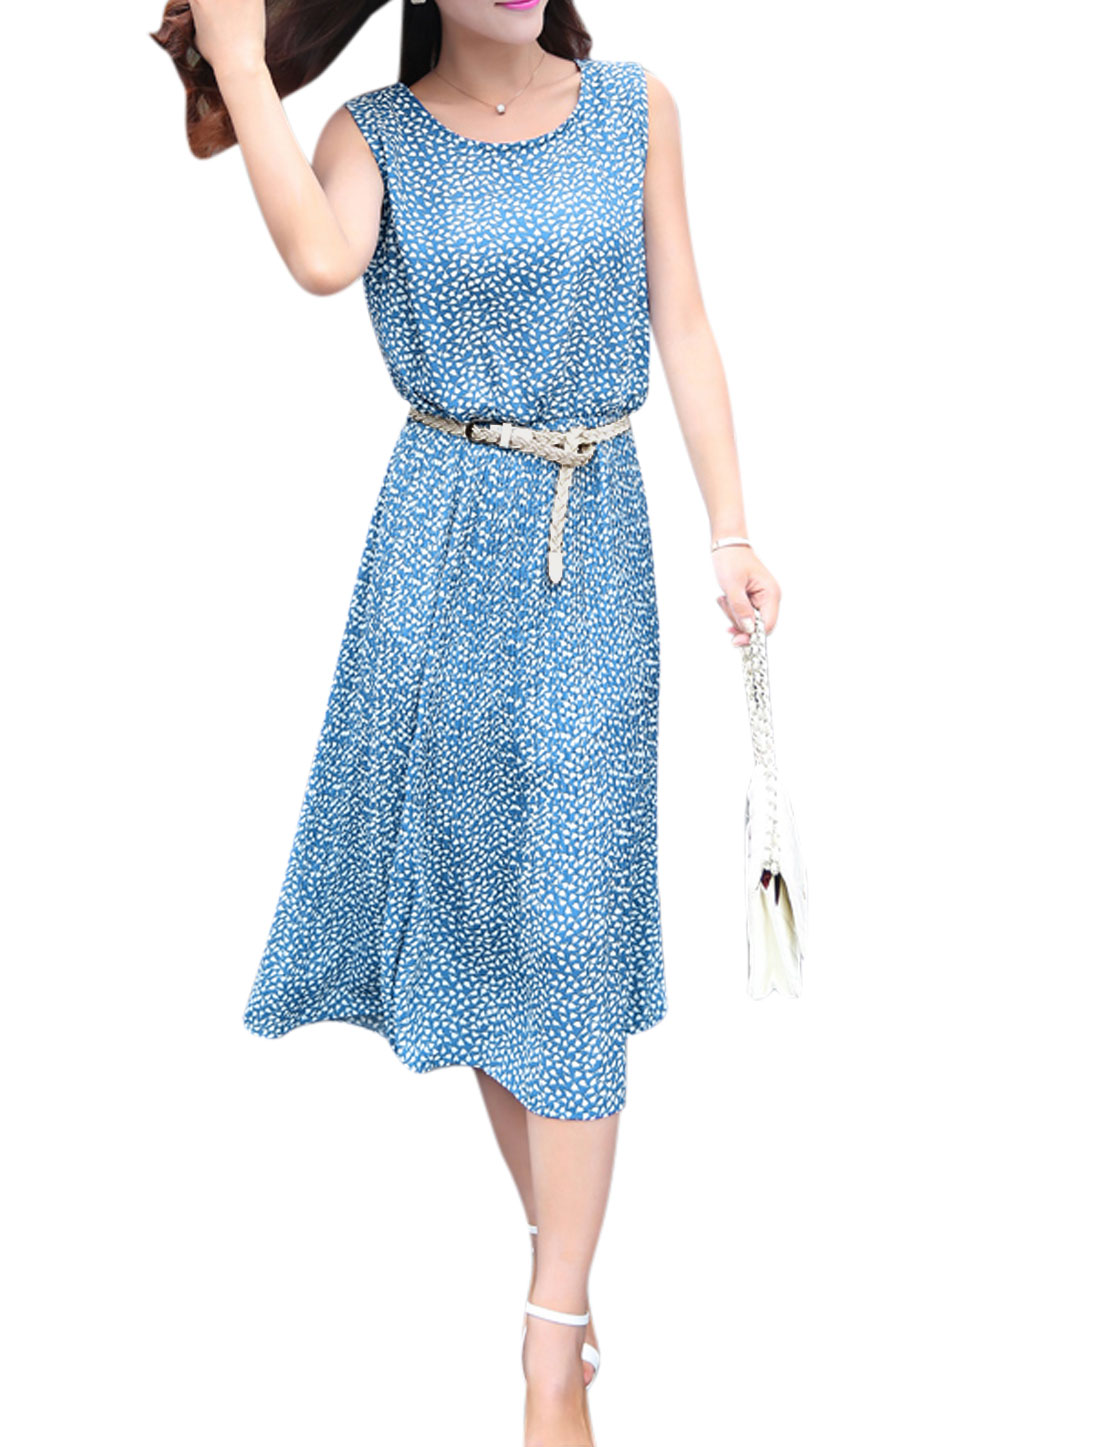 Women Floral Prints Sleeveless Belted A Line Dress Blue M